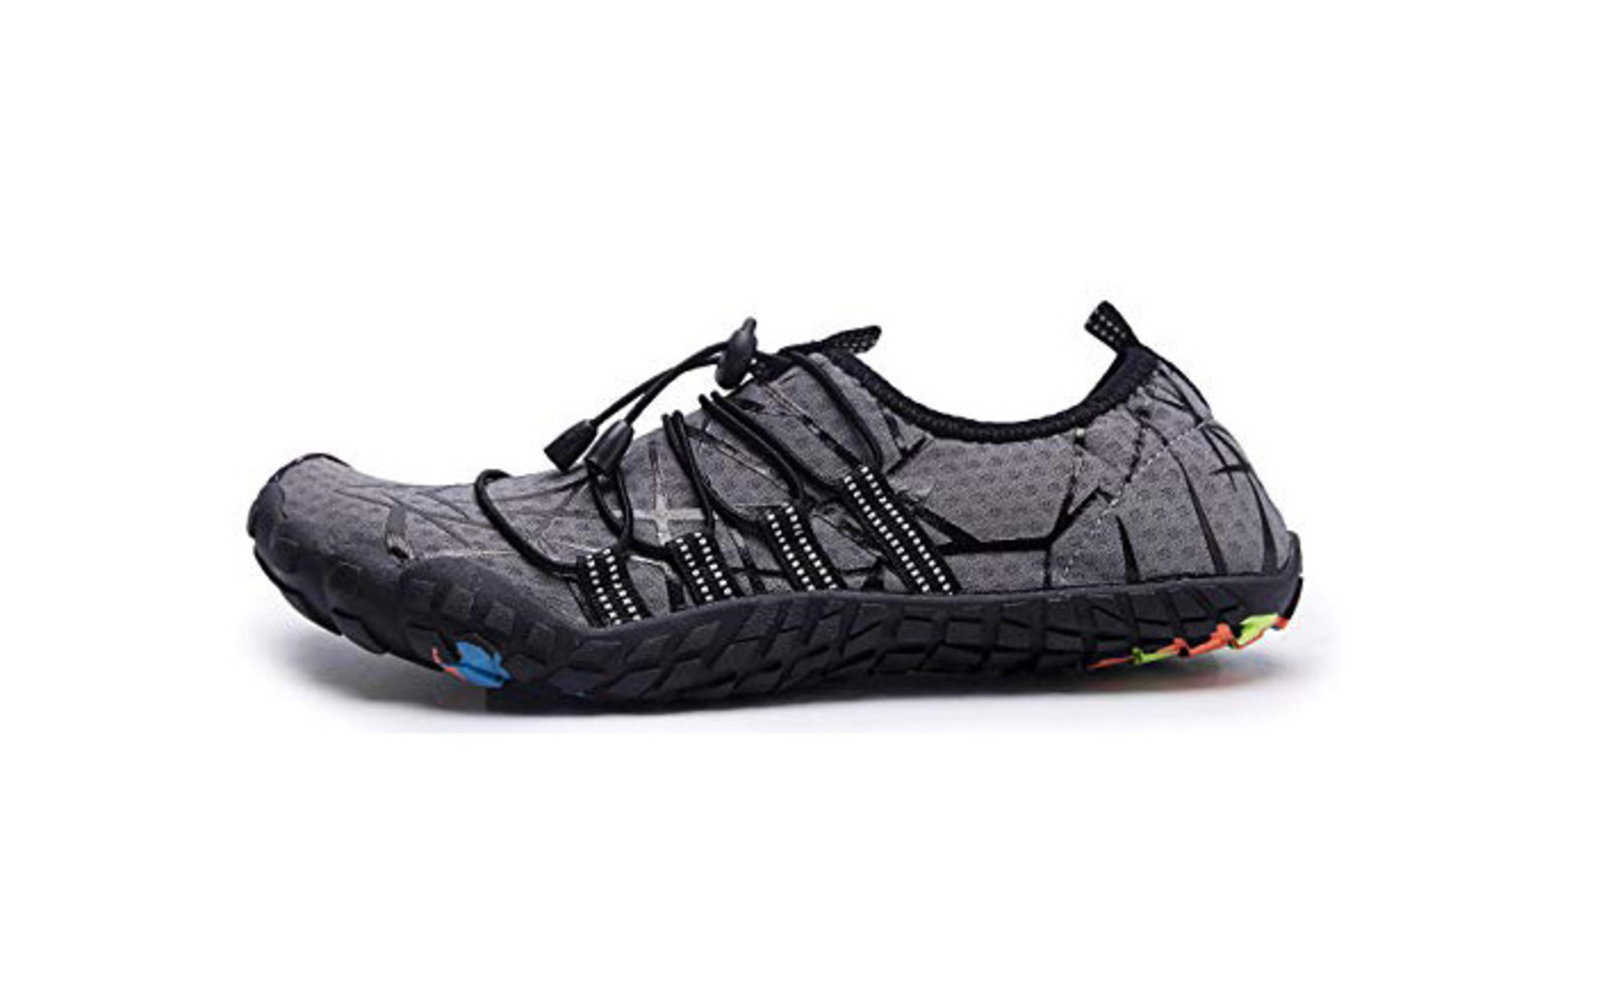 Z-Joyee mens water shoes